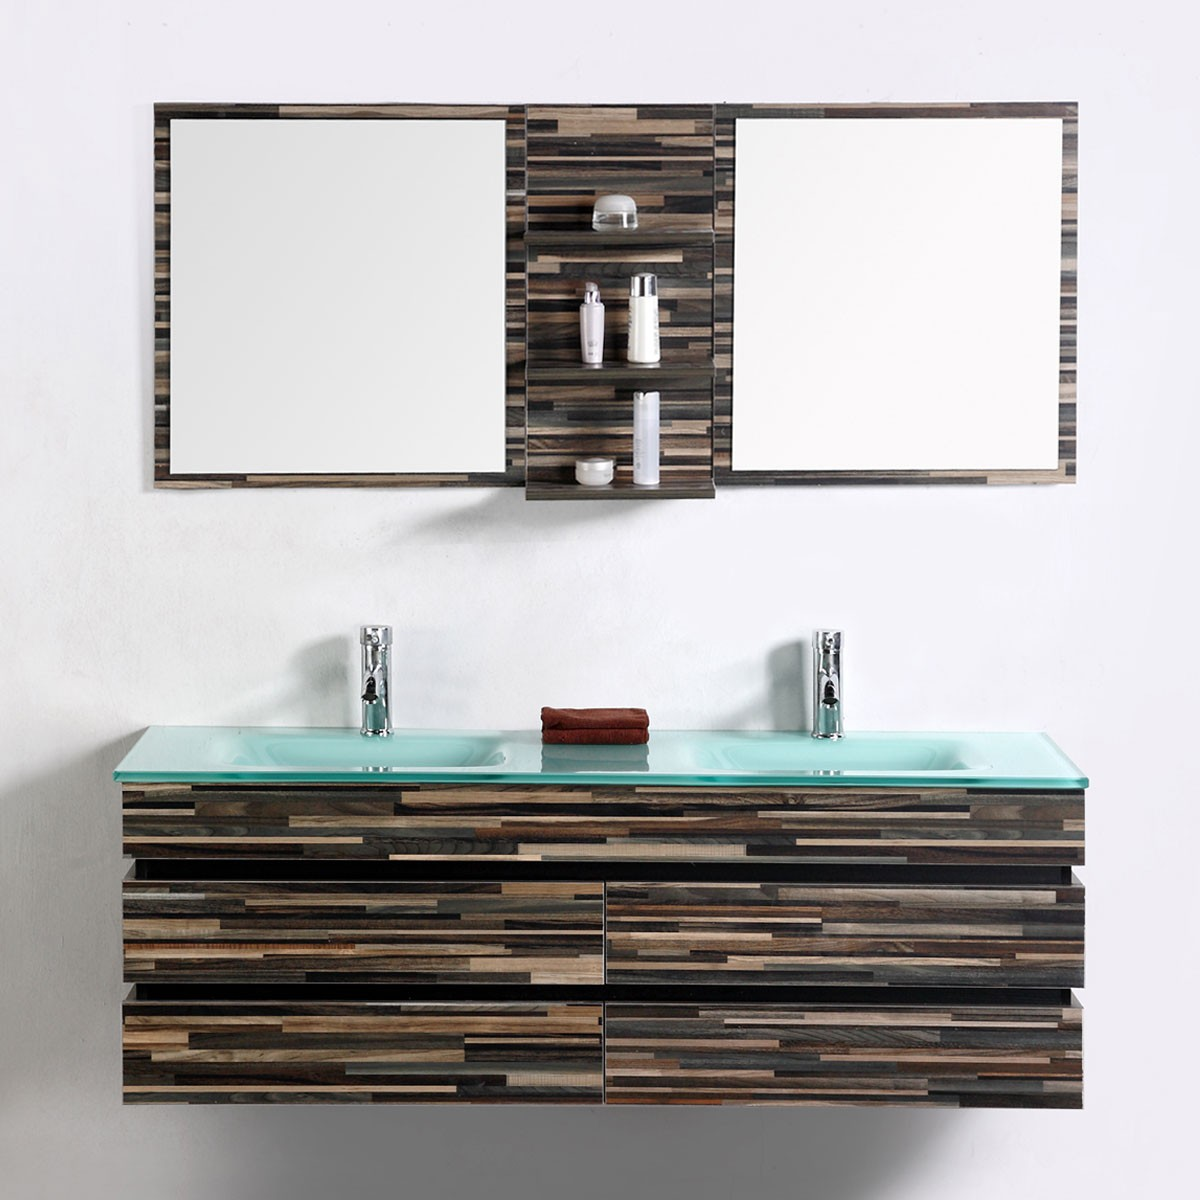 55 In. Wall Mount Bathroom Vanity Set With Double Glass Sink and ...